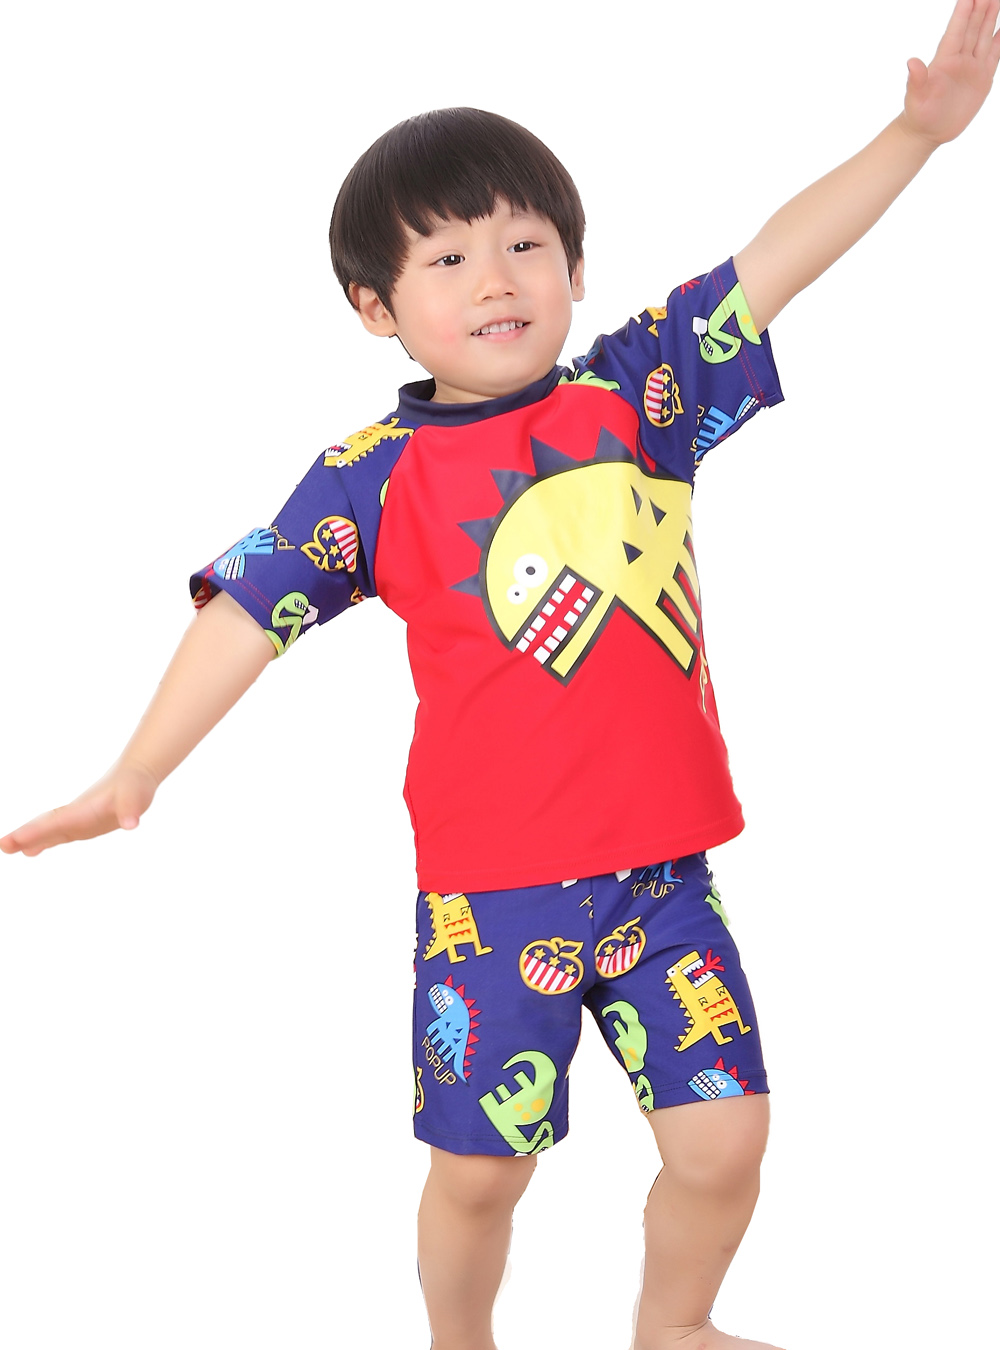 Protect your baby from sun and UV rays with super safe range of UPF50+ Sun Protection Swimwear & beachwear from Sunuva leading and trusted sun-blocking swimwear supplier.